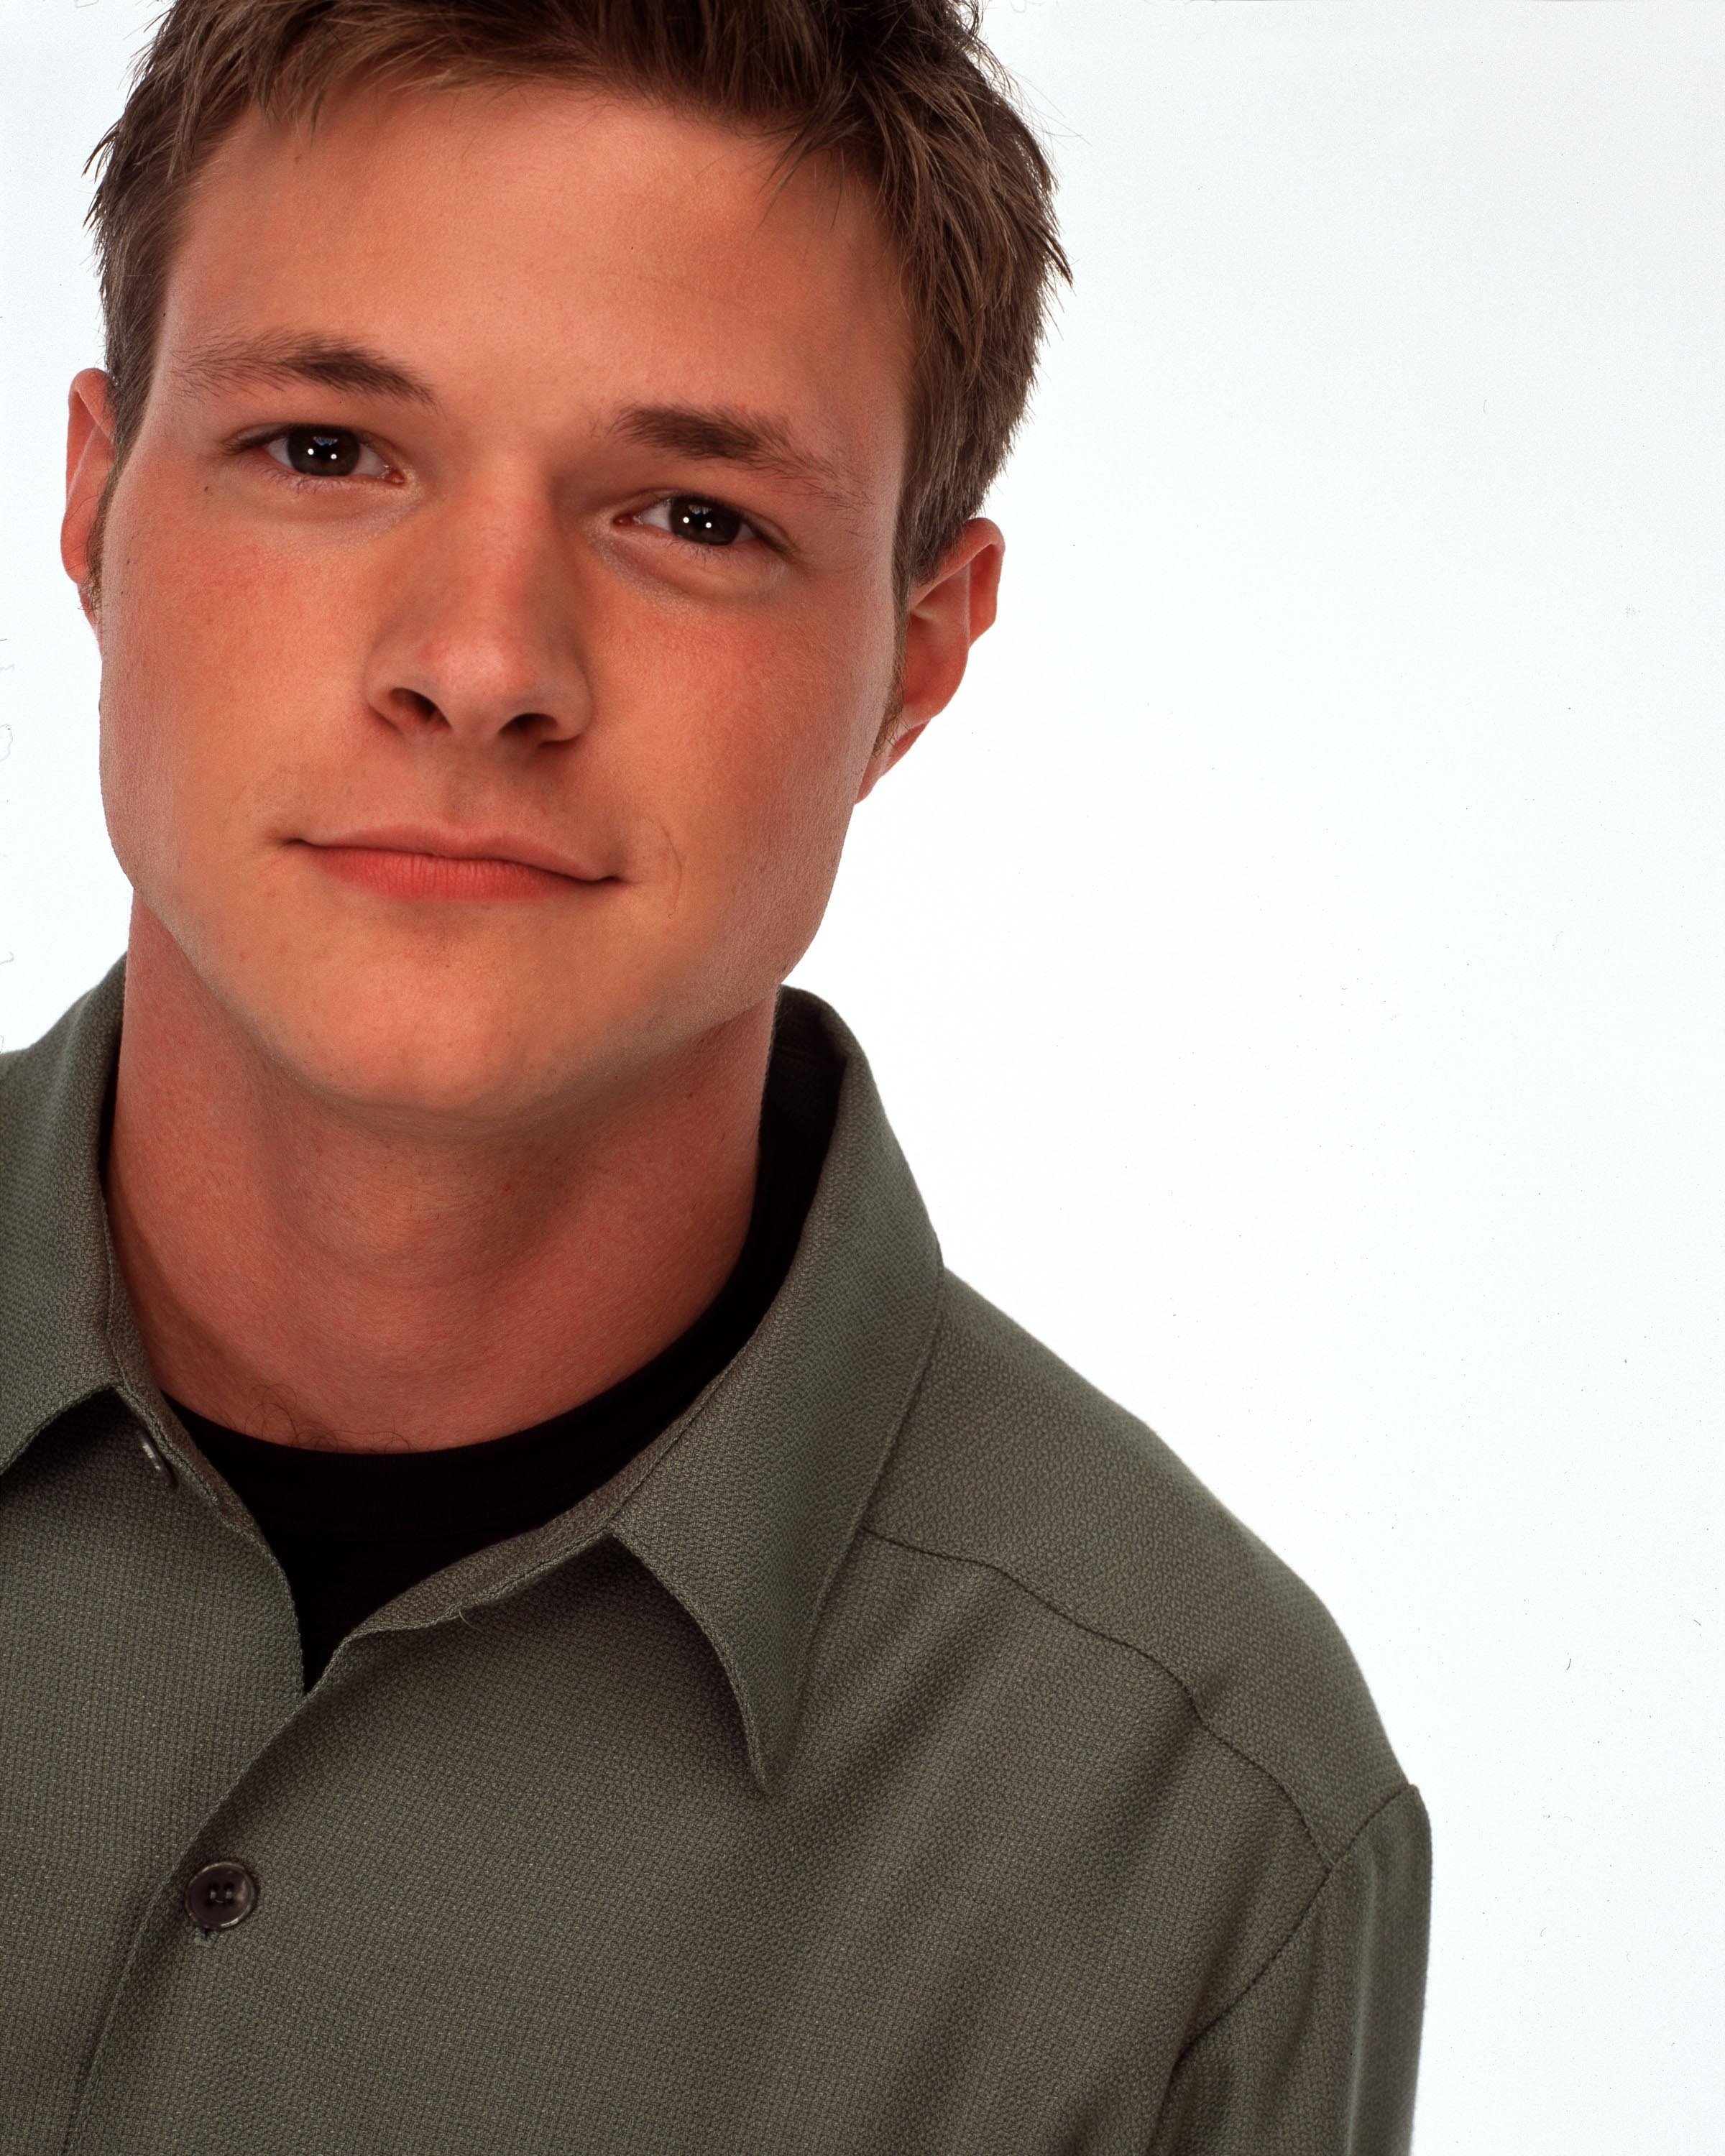 Former Sabrina The Teenage Witch Star Works As Janitor Wonderwall Com Nate richert was born in minnesota and spent most of his childhood there with his siblings and also samantha burton bio, age, now, career, net worth, boyfriend, ig >>. former sabrina the teenage witch star